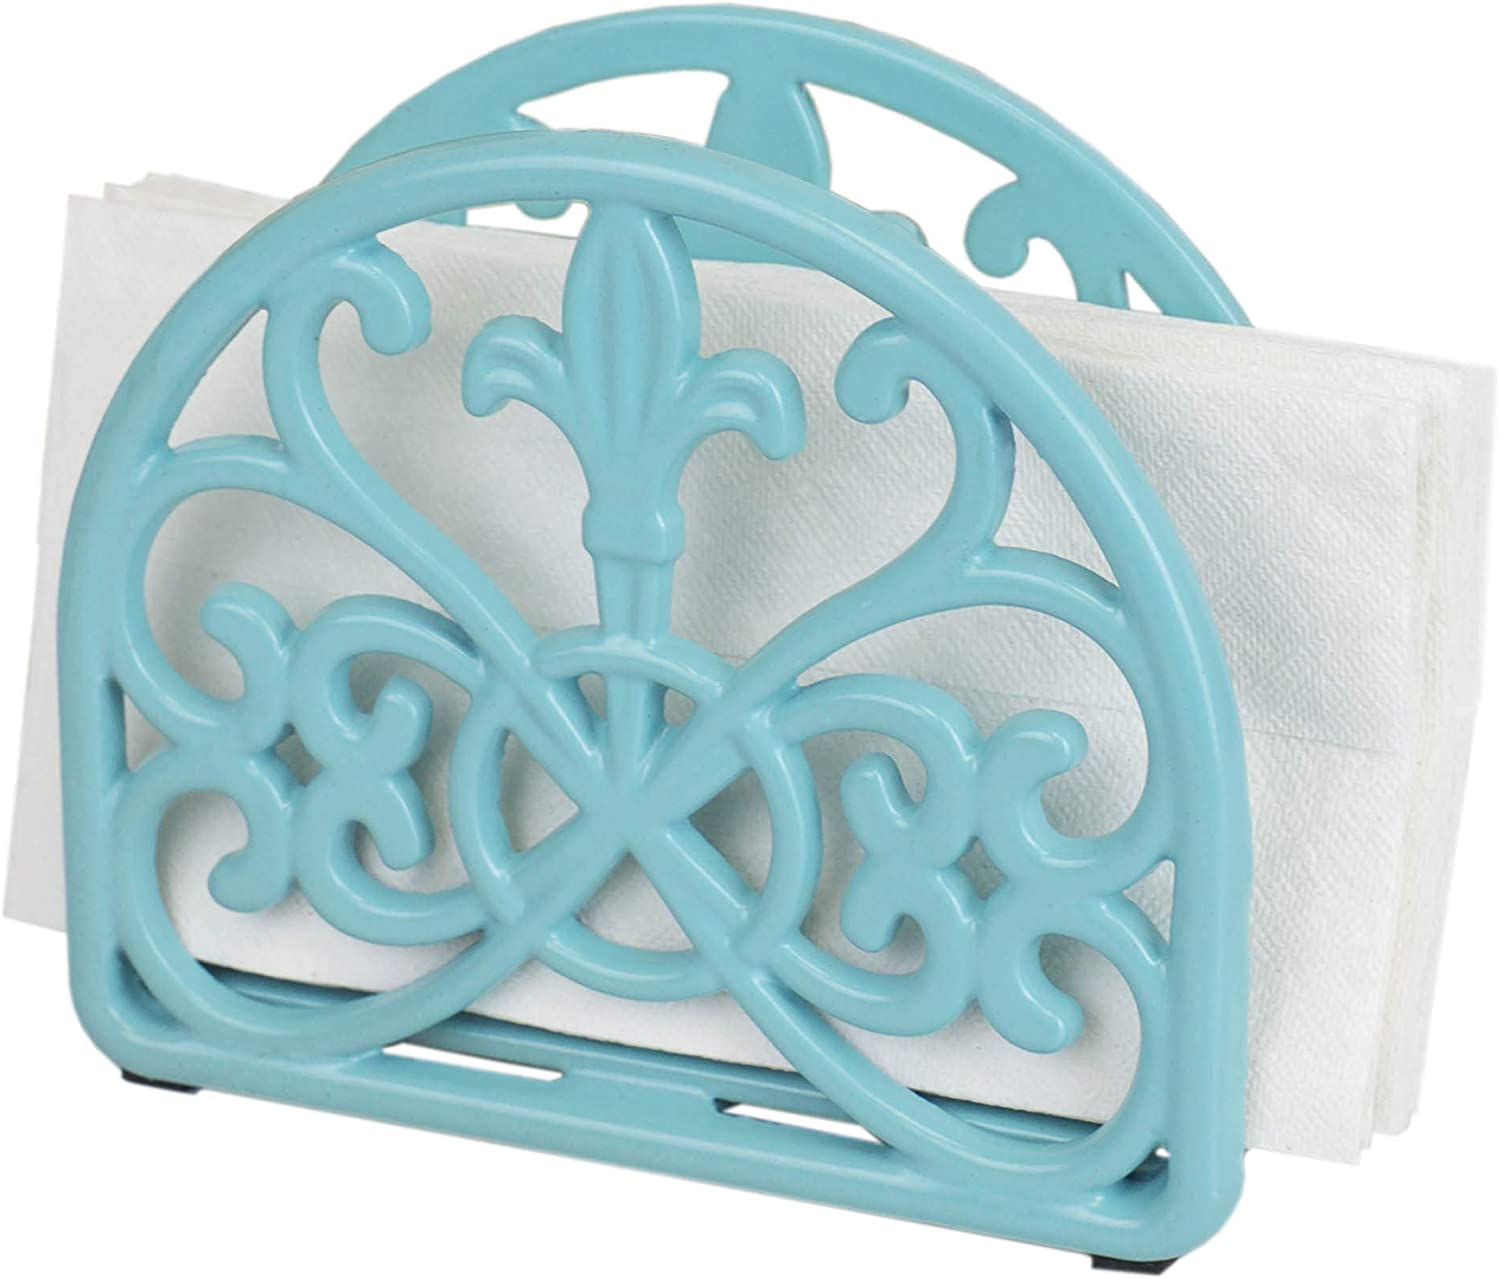 Home Basics Cast Iron Fleur De Lis Napkin Holder Kitchen Countertop Dinner Table Indoor & Outdoor